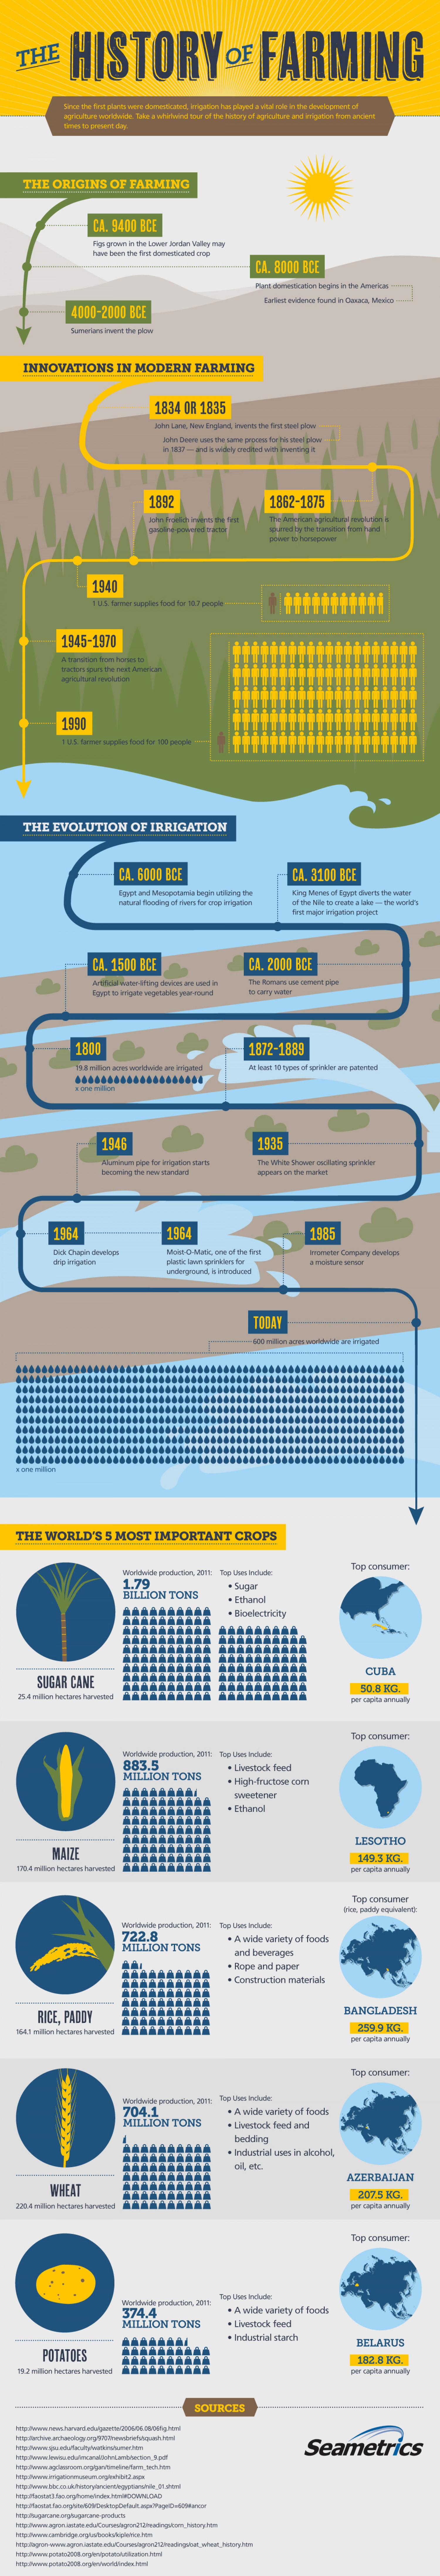 History of Farming Infographic